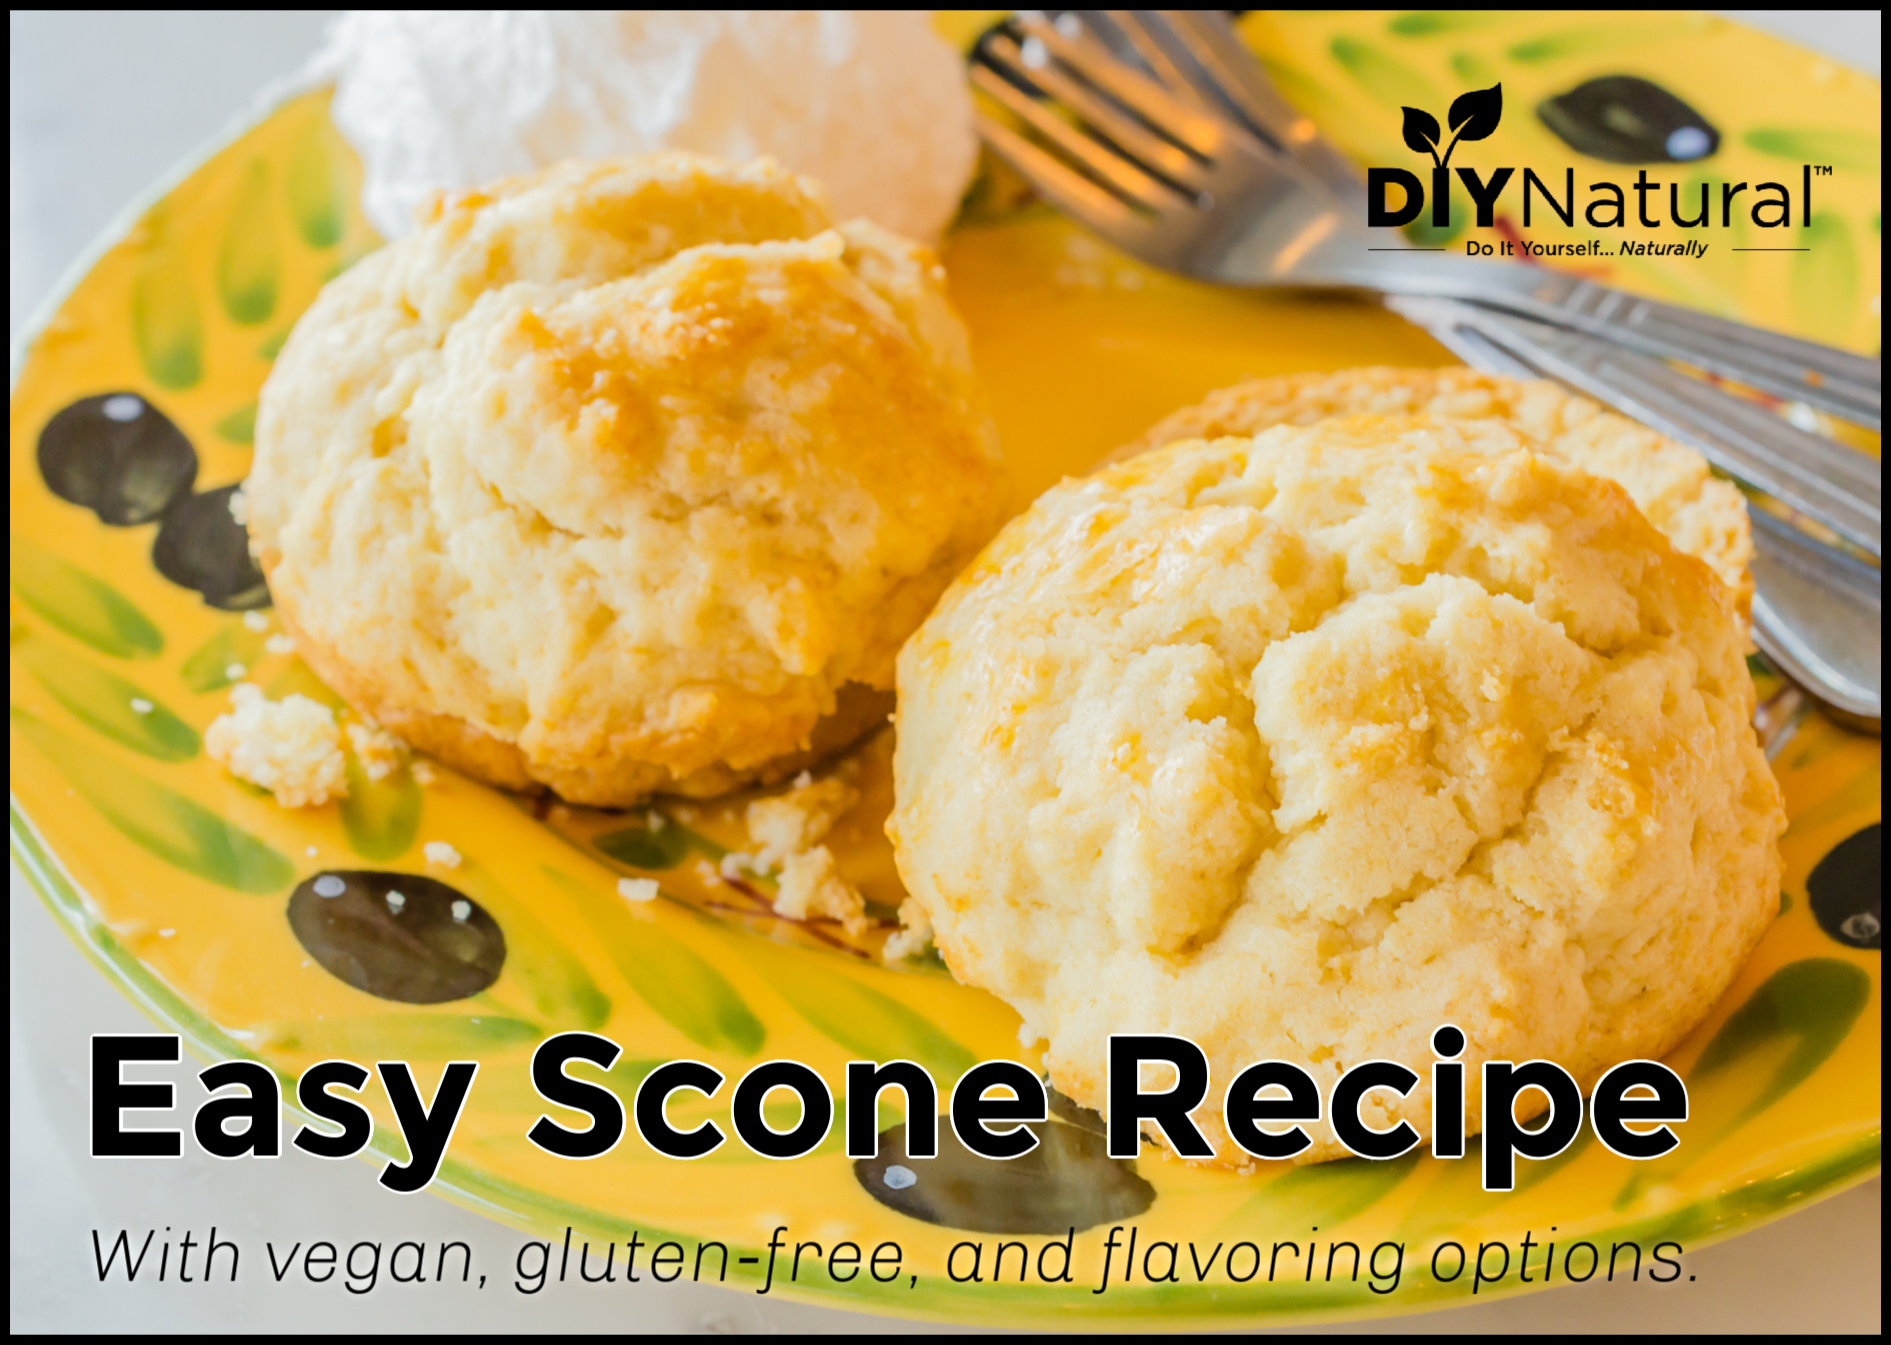 Easy Scone Recipe with Gluten-Free & Other Options